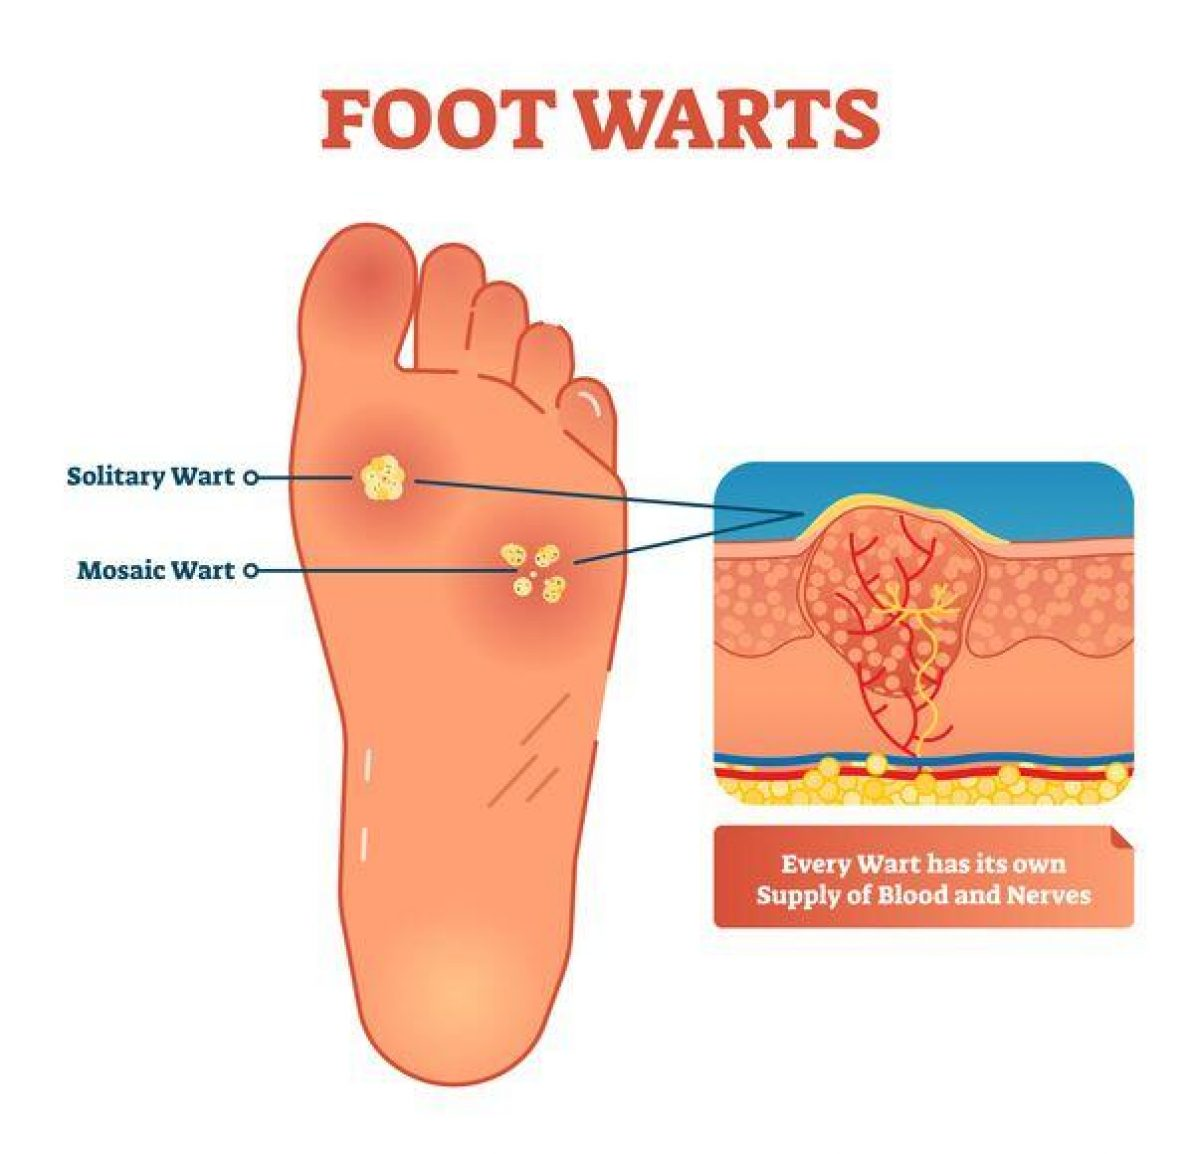 wart on foot palm)